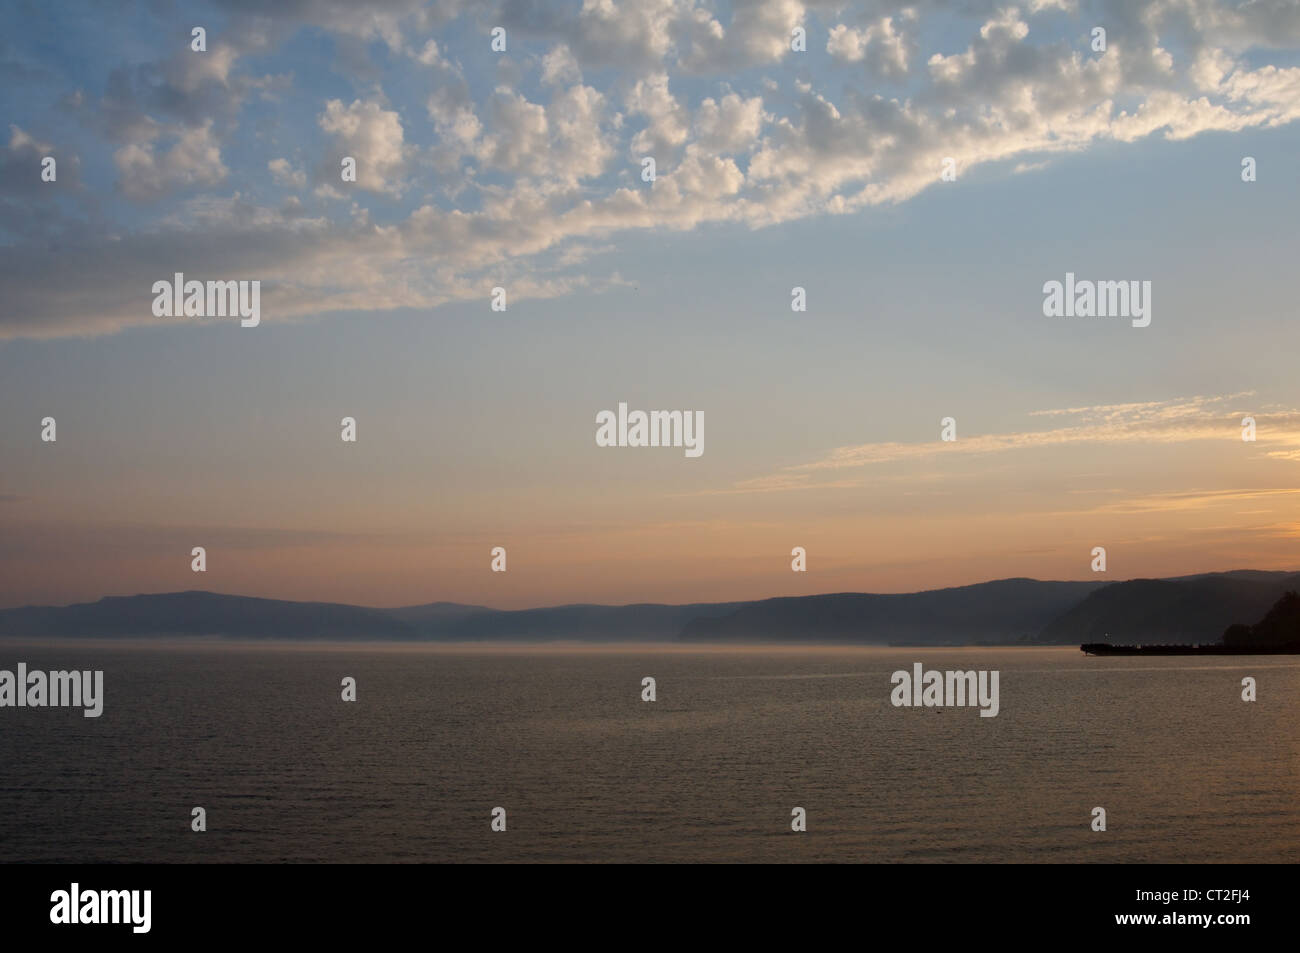 Decline. Baikal lake, Siberia, Russian Federation - Stock Image